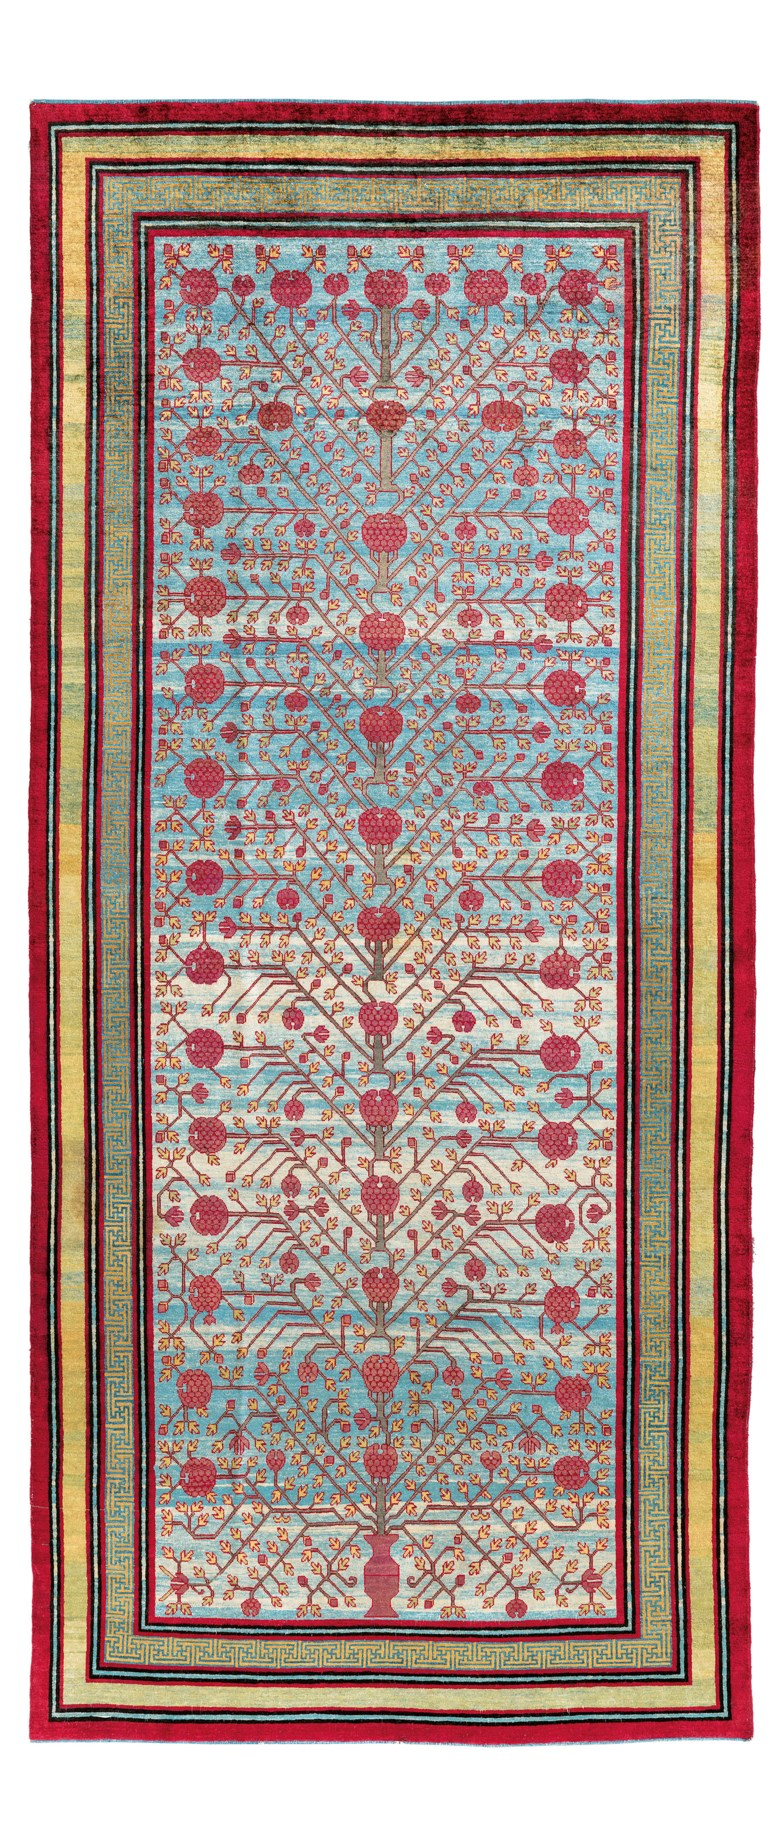 A silk Yarkand carpet, east Turkestan, first half 19th century. 11 ft 8 in x 5 ft 1 in (359 cm x 154 cm). Estimate £50,000-70,000. Offered in Art of the Islamic and Indian Worlds Including Oriental Rugs and Carpets on 25 June 2020 at Christie's in London